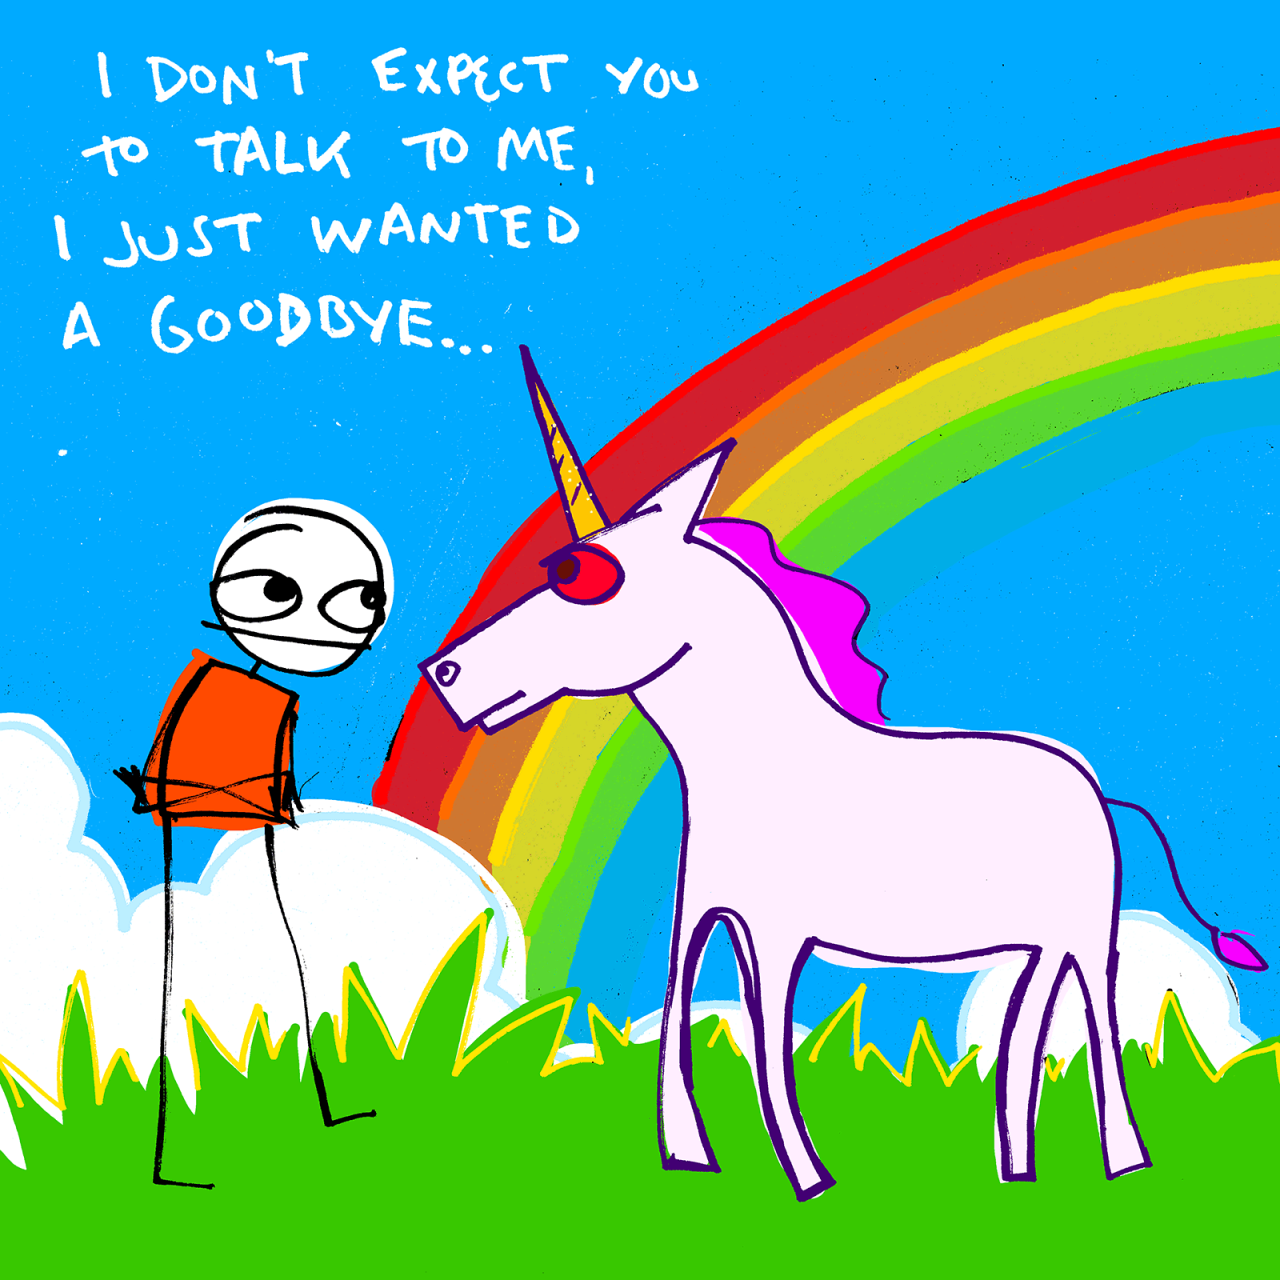 I don't expect you to talk to me. (a unicorn being mean)